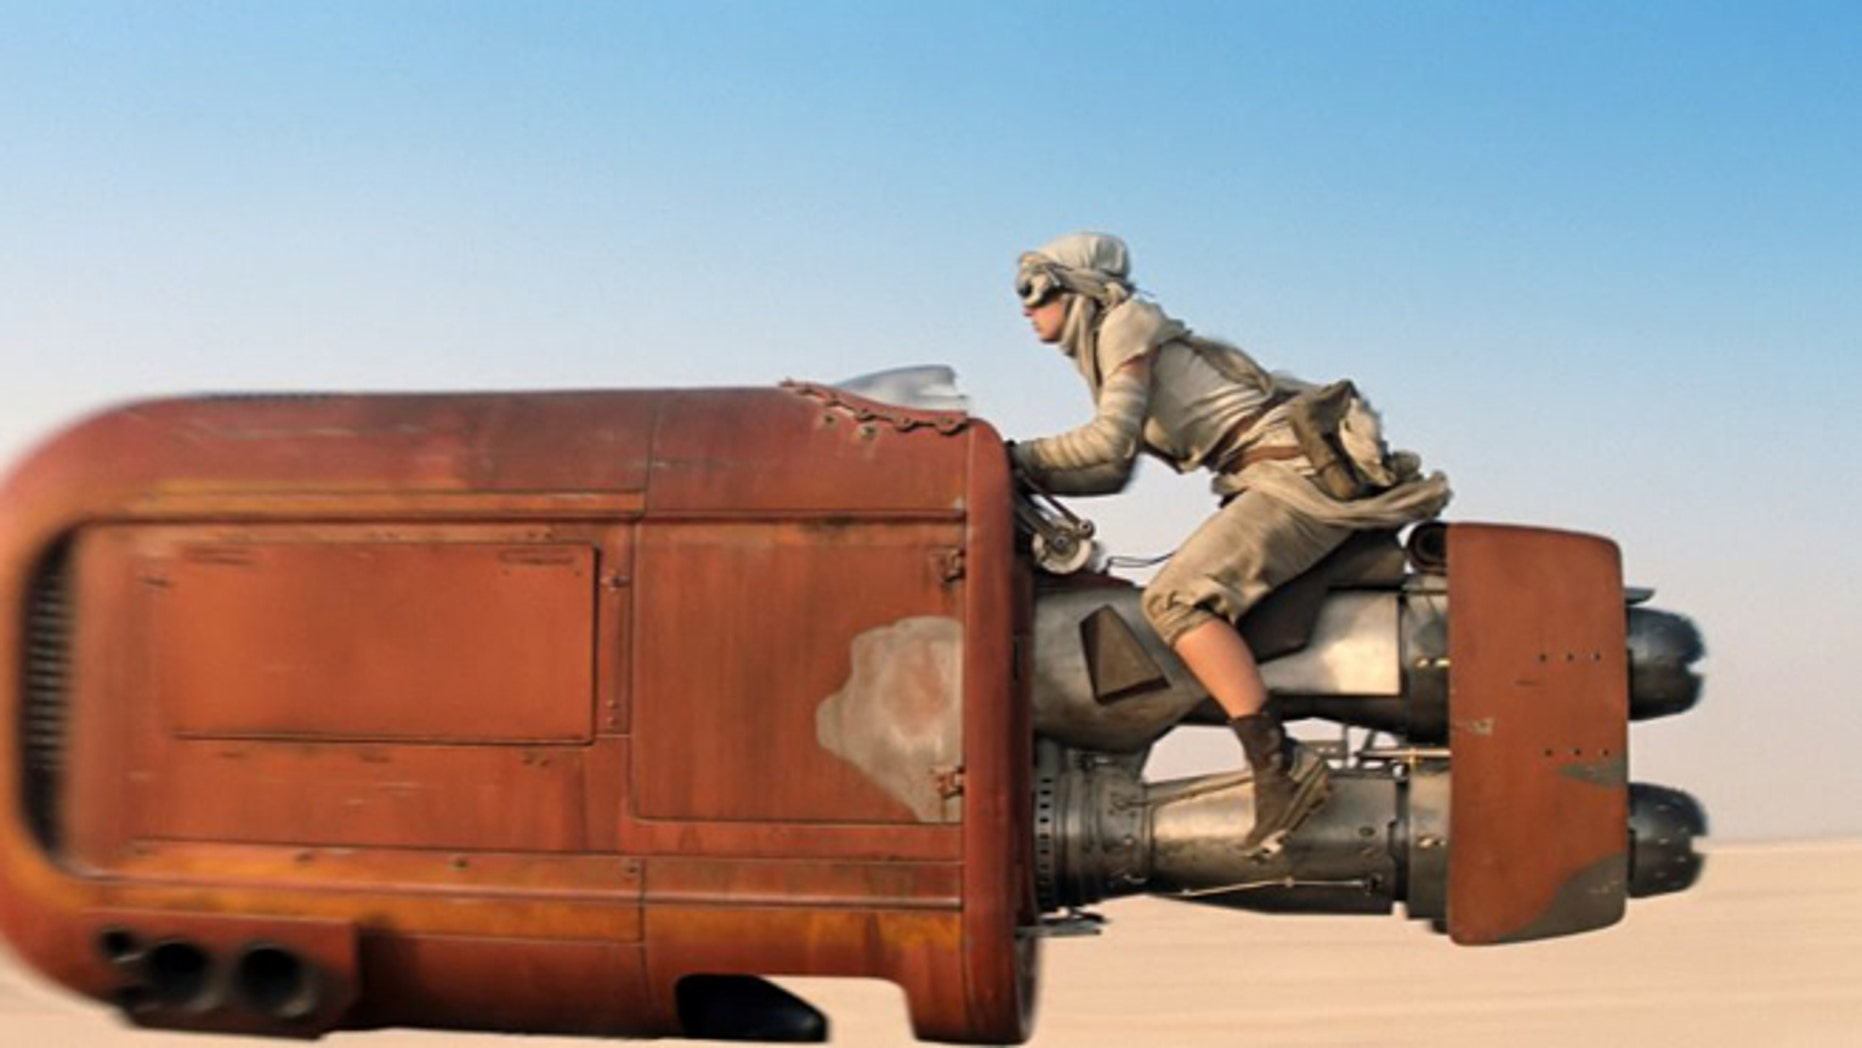 """A scene is shown from the upcoming film, """"Star Wars: The Force Awakens,"""" expected in theaters on Dec. 18, 2015."""